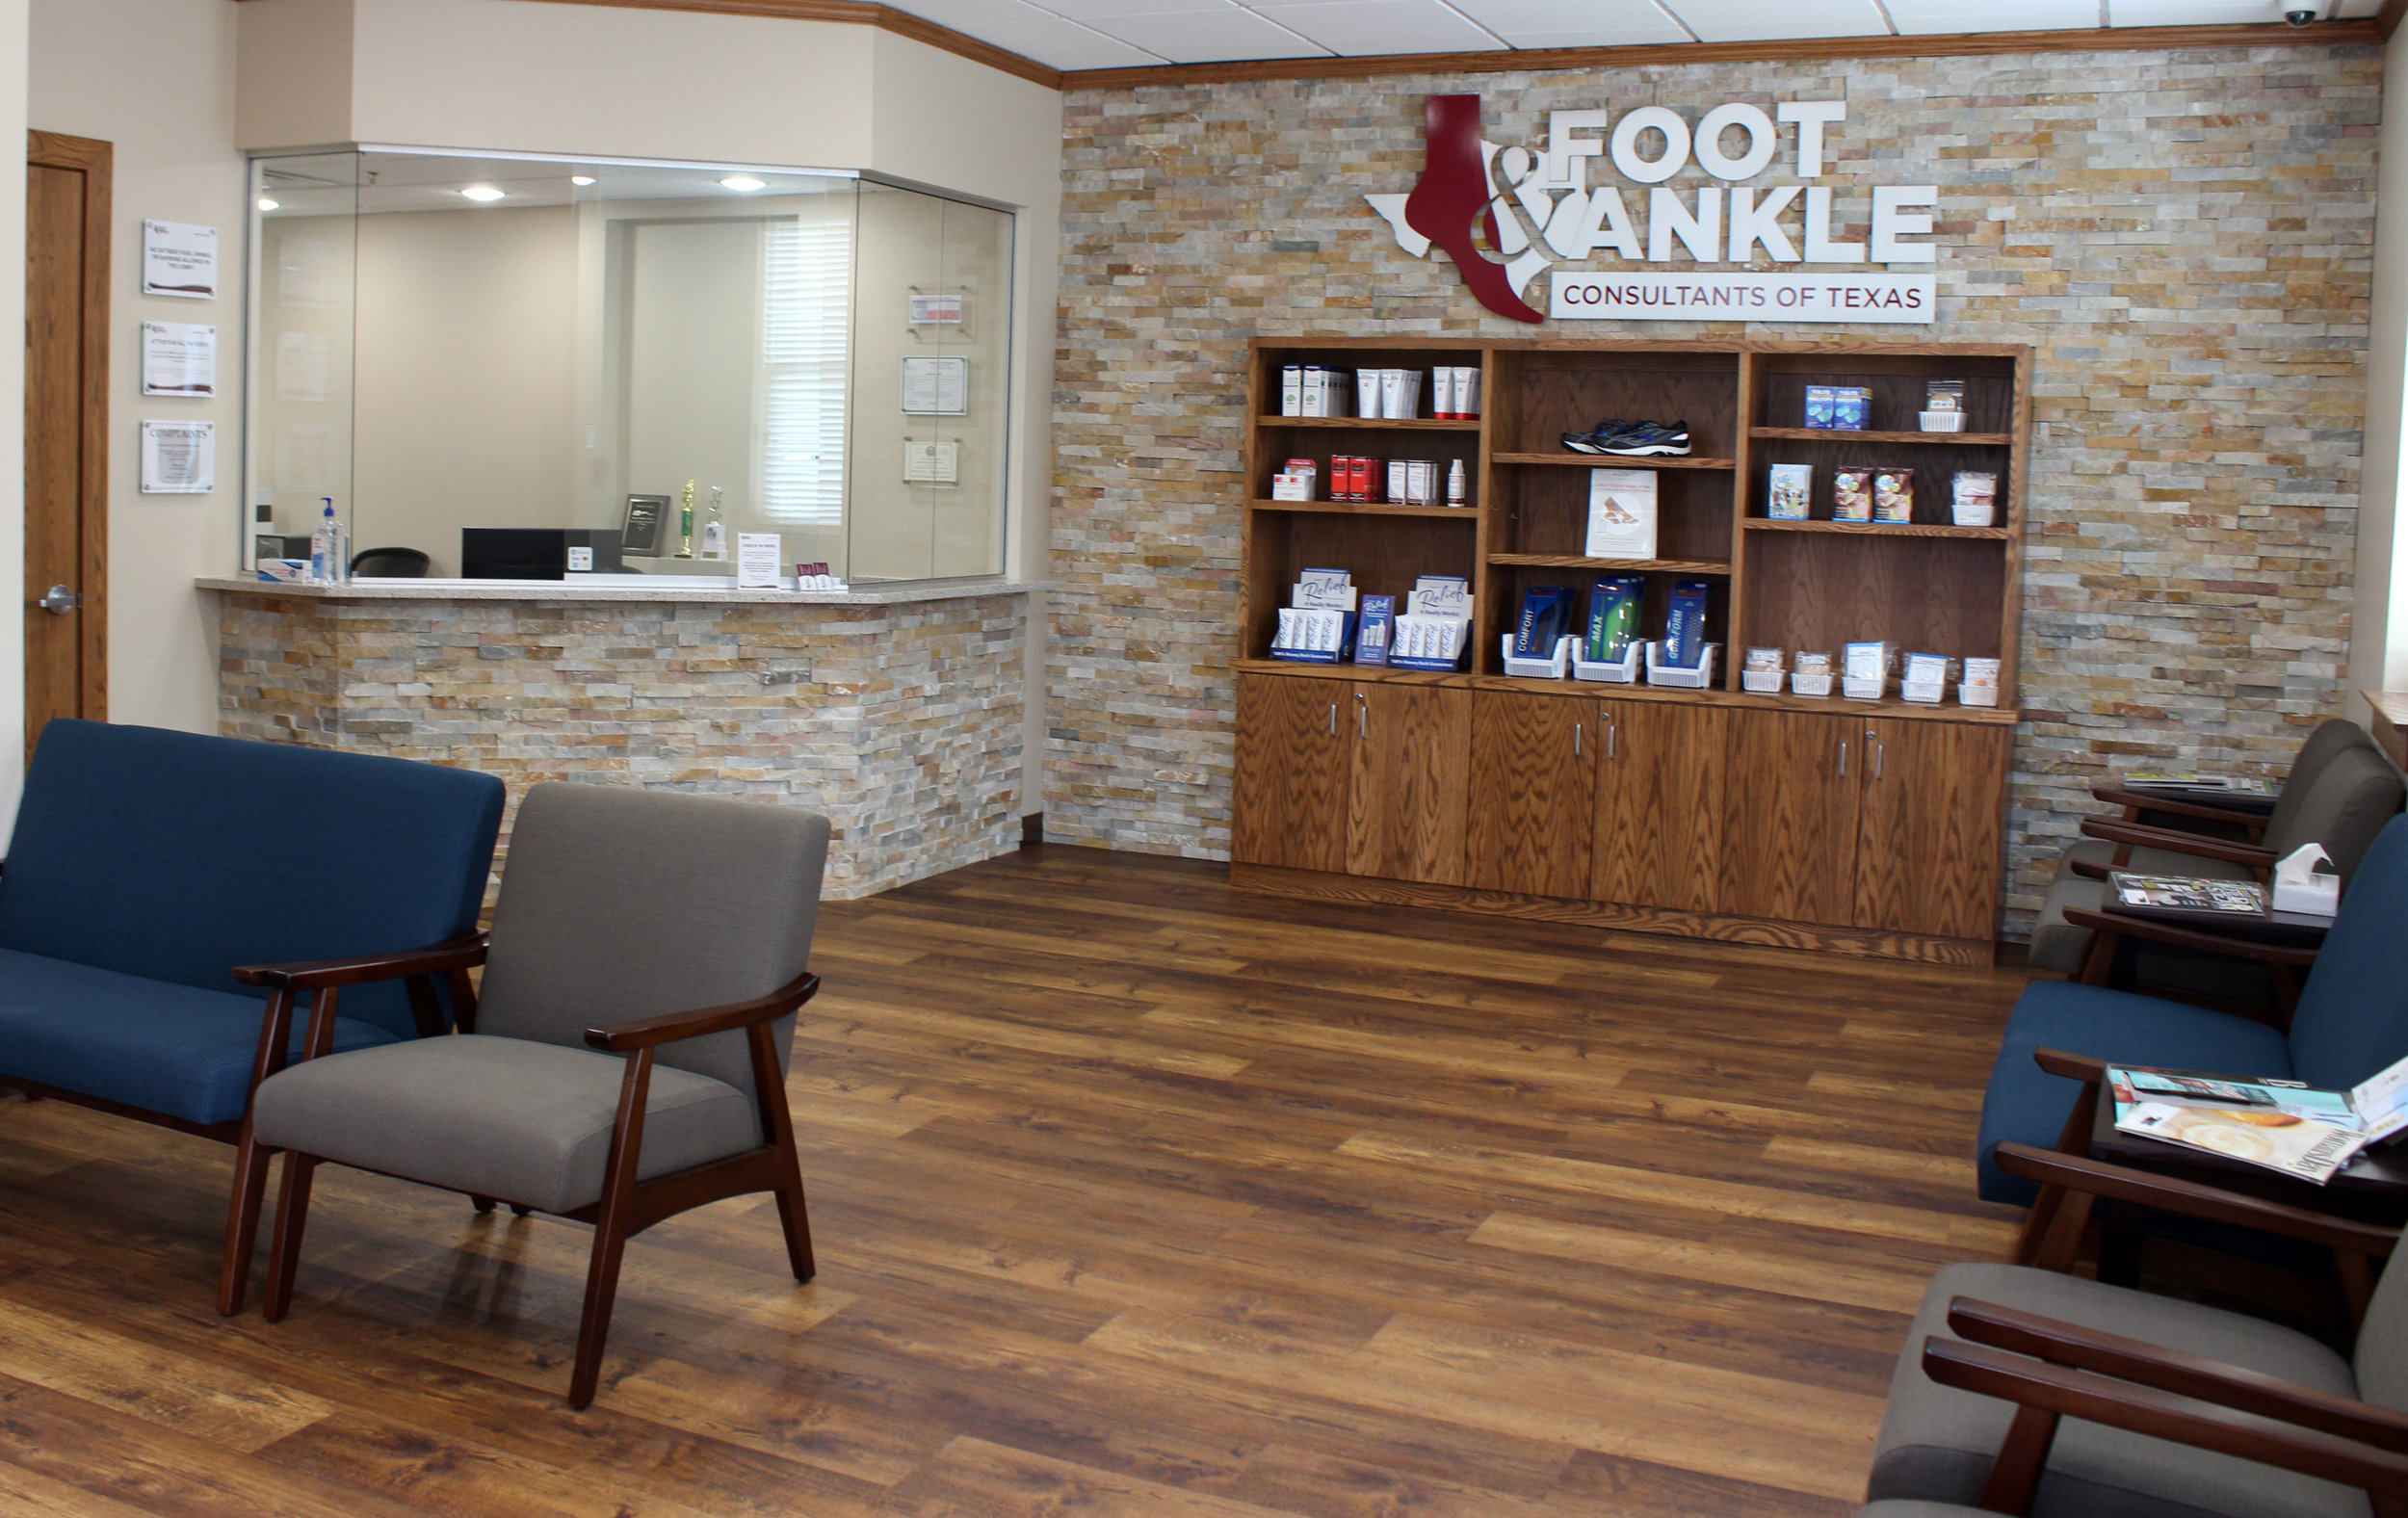 Foot ankle interior reception.jpg